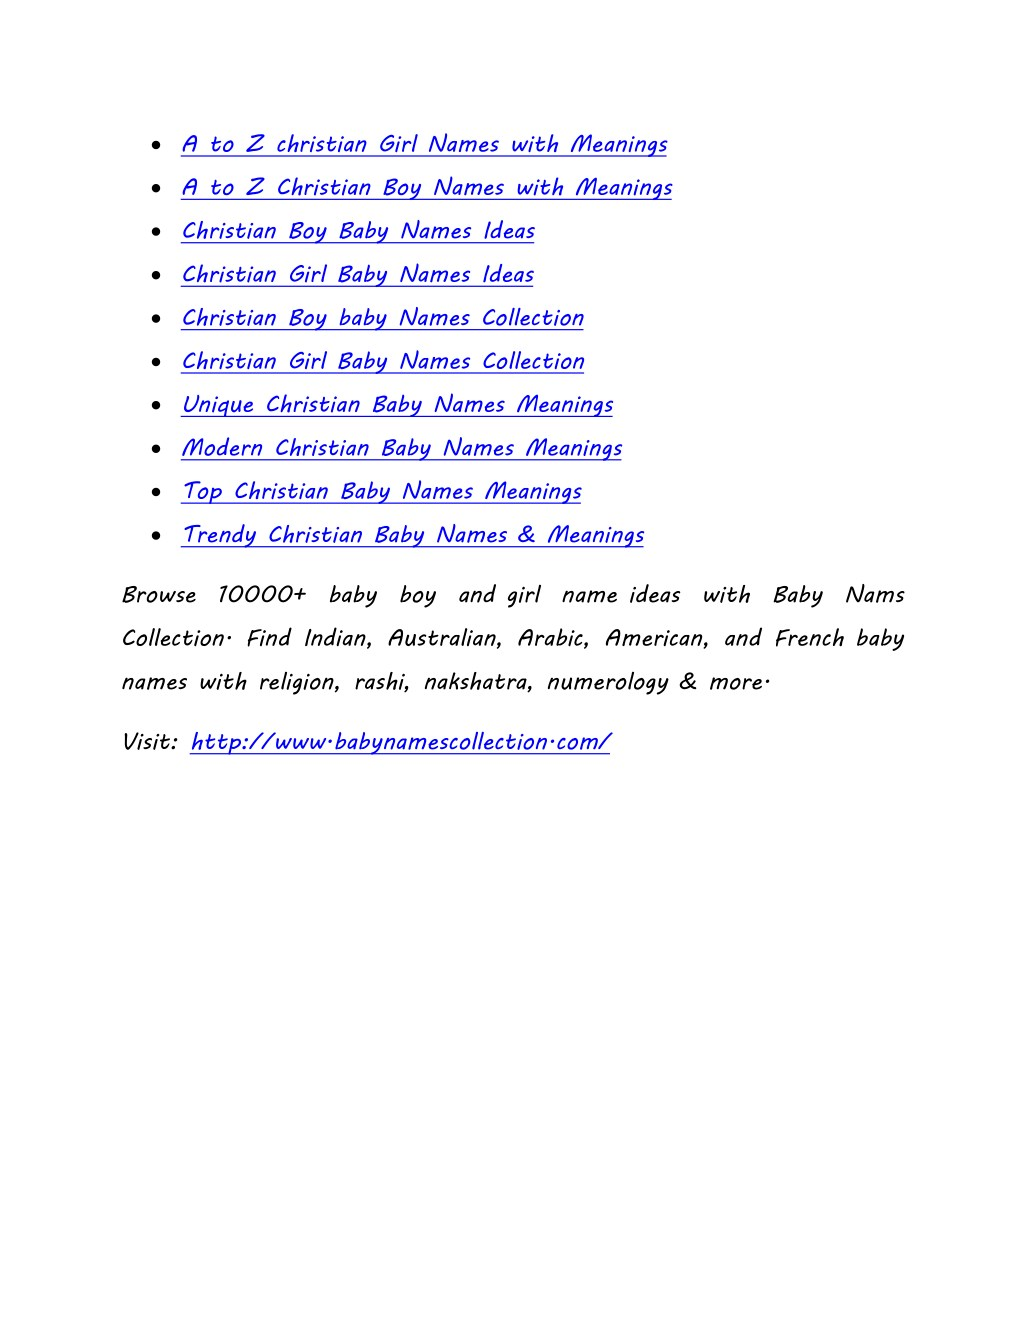 PPT - A to Z Trendy Christian Baby Names   Christian Boy and